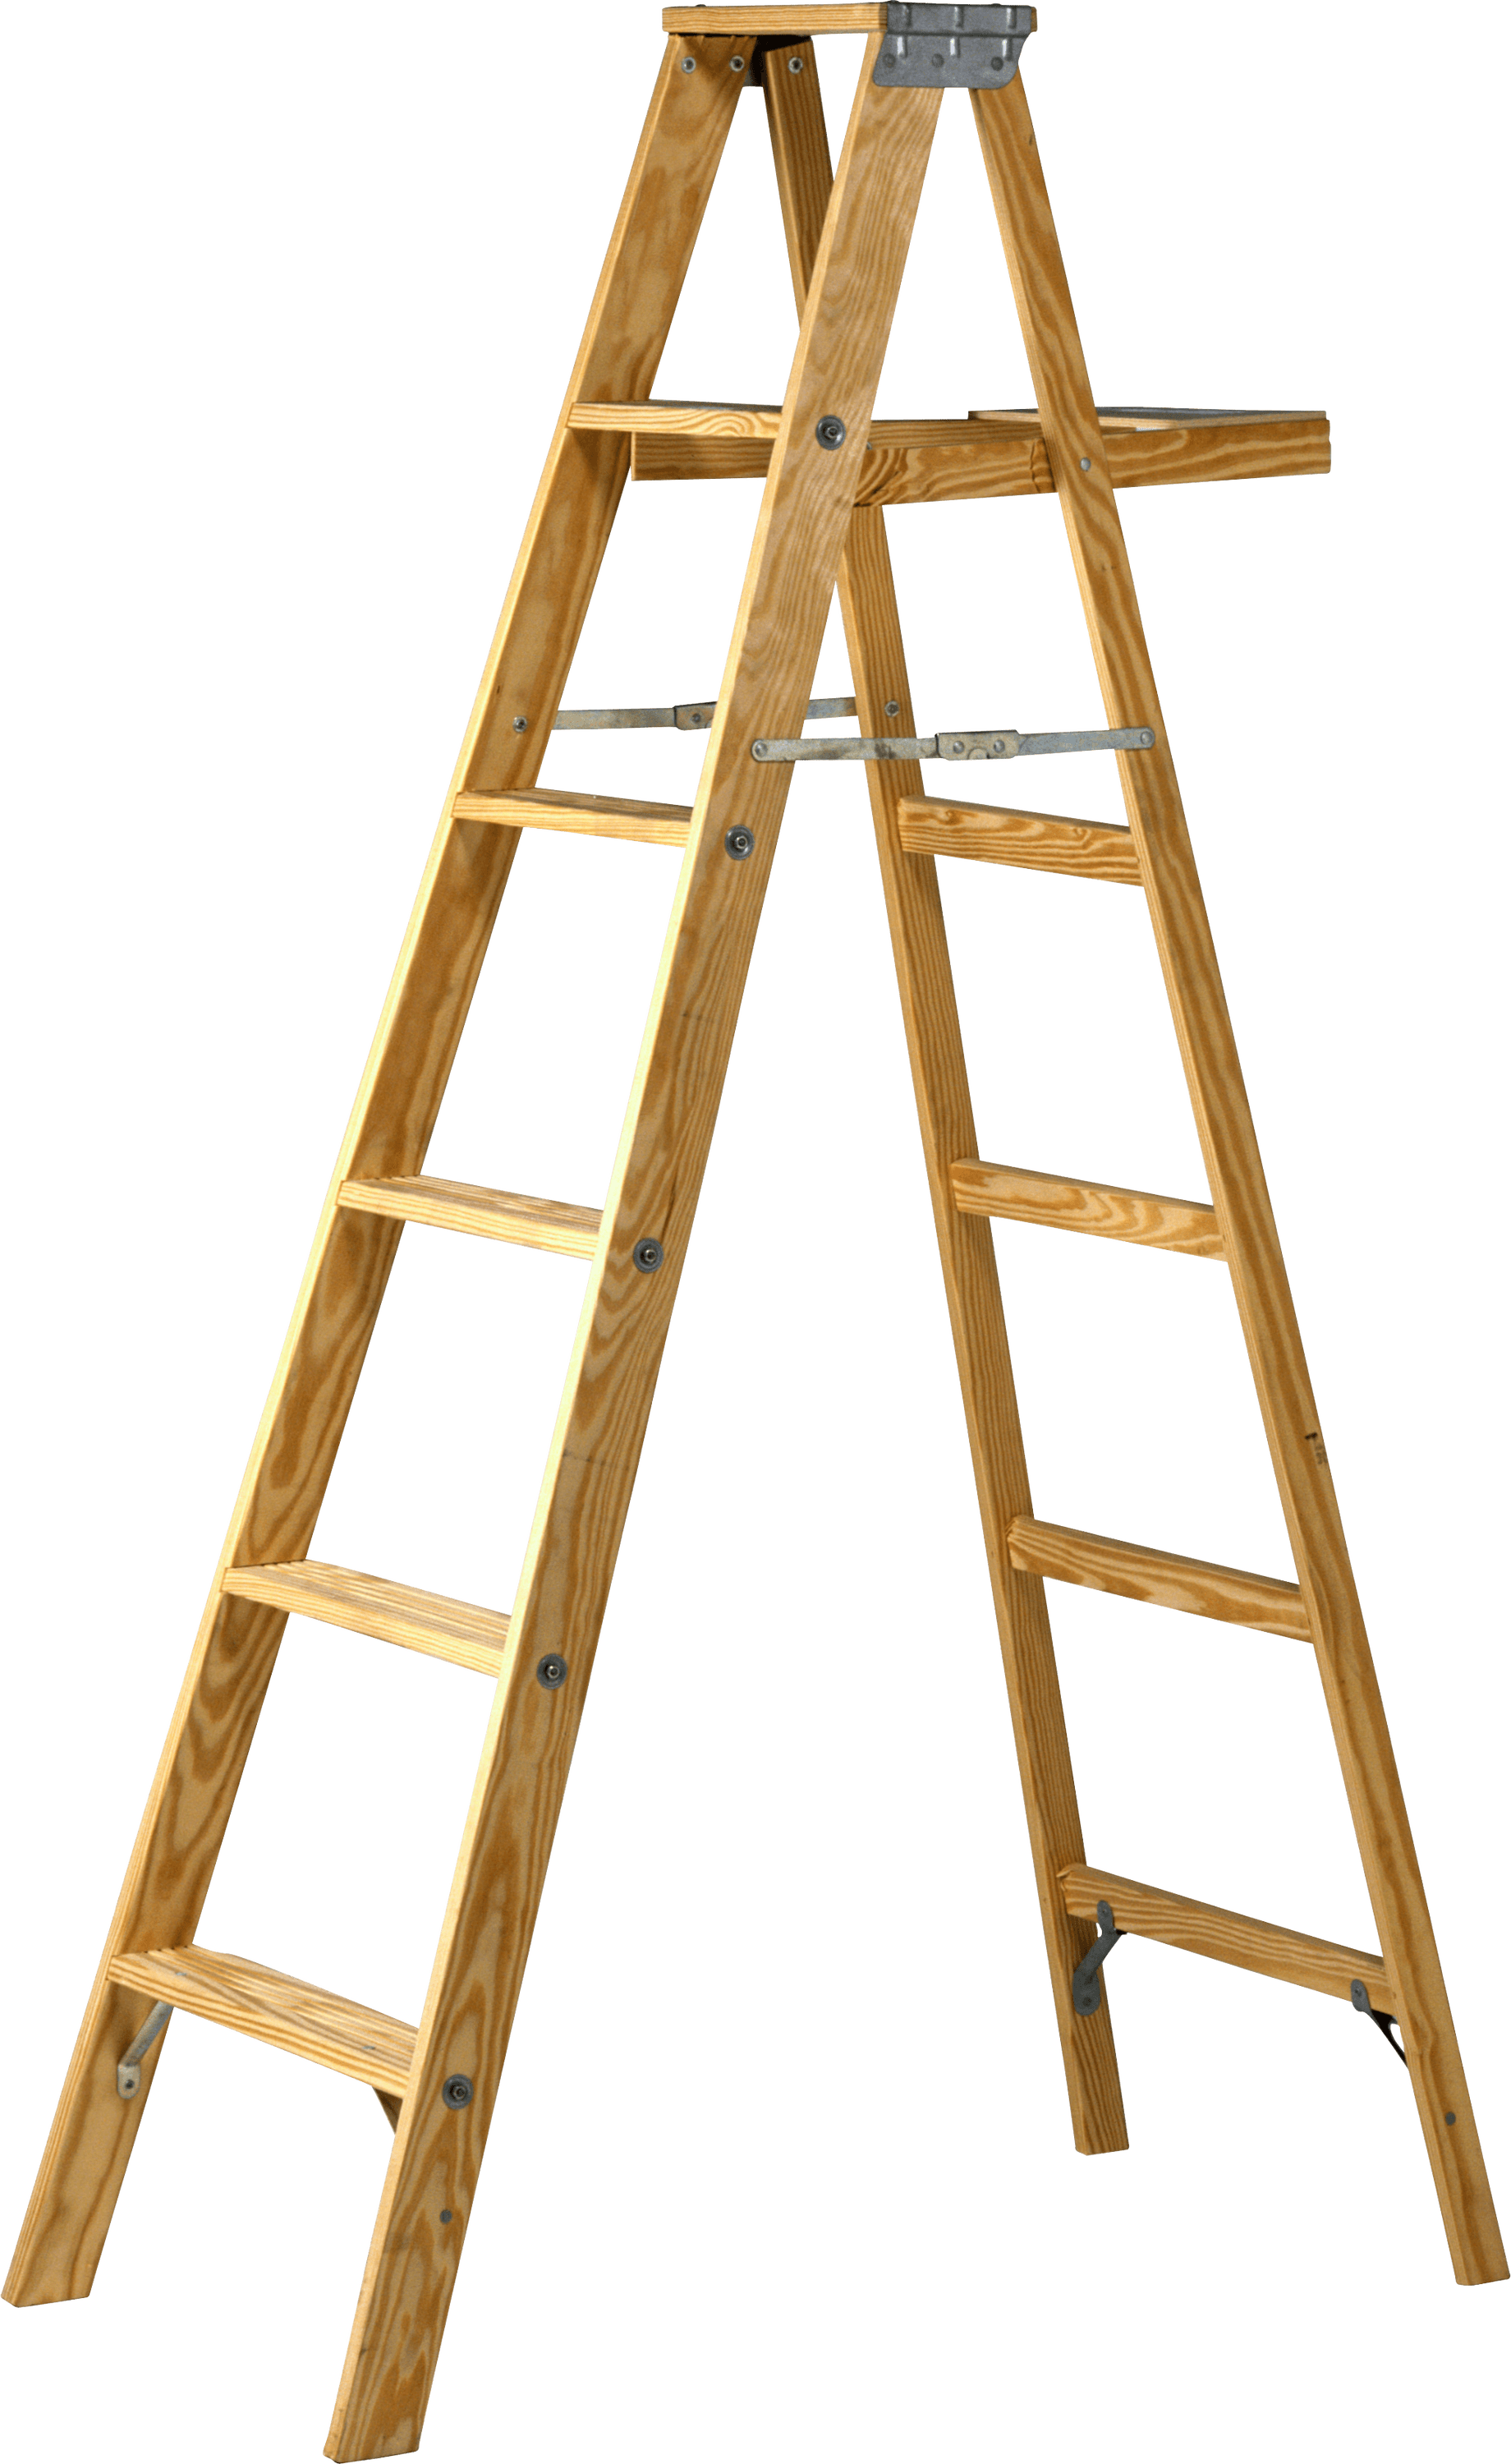 Double Wood Ladder Transparent Png Stickpng